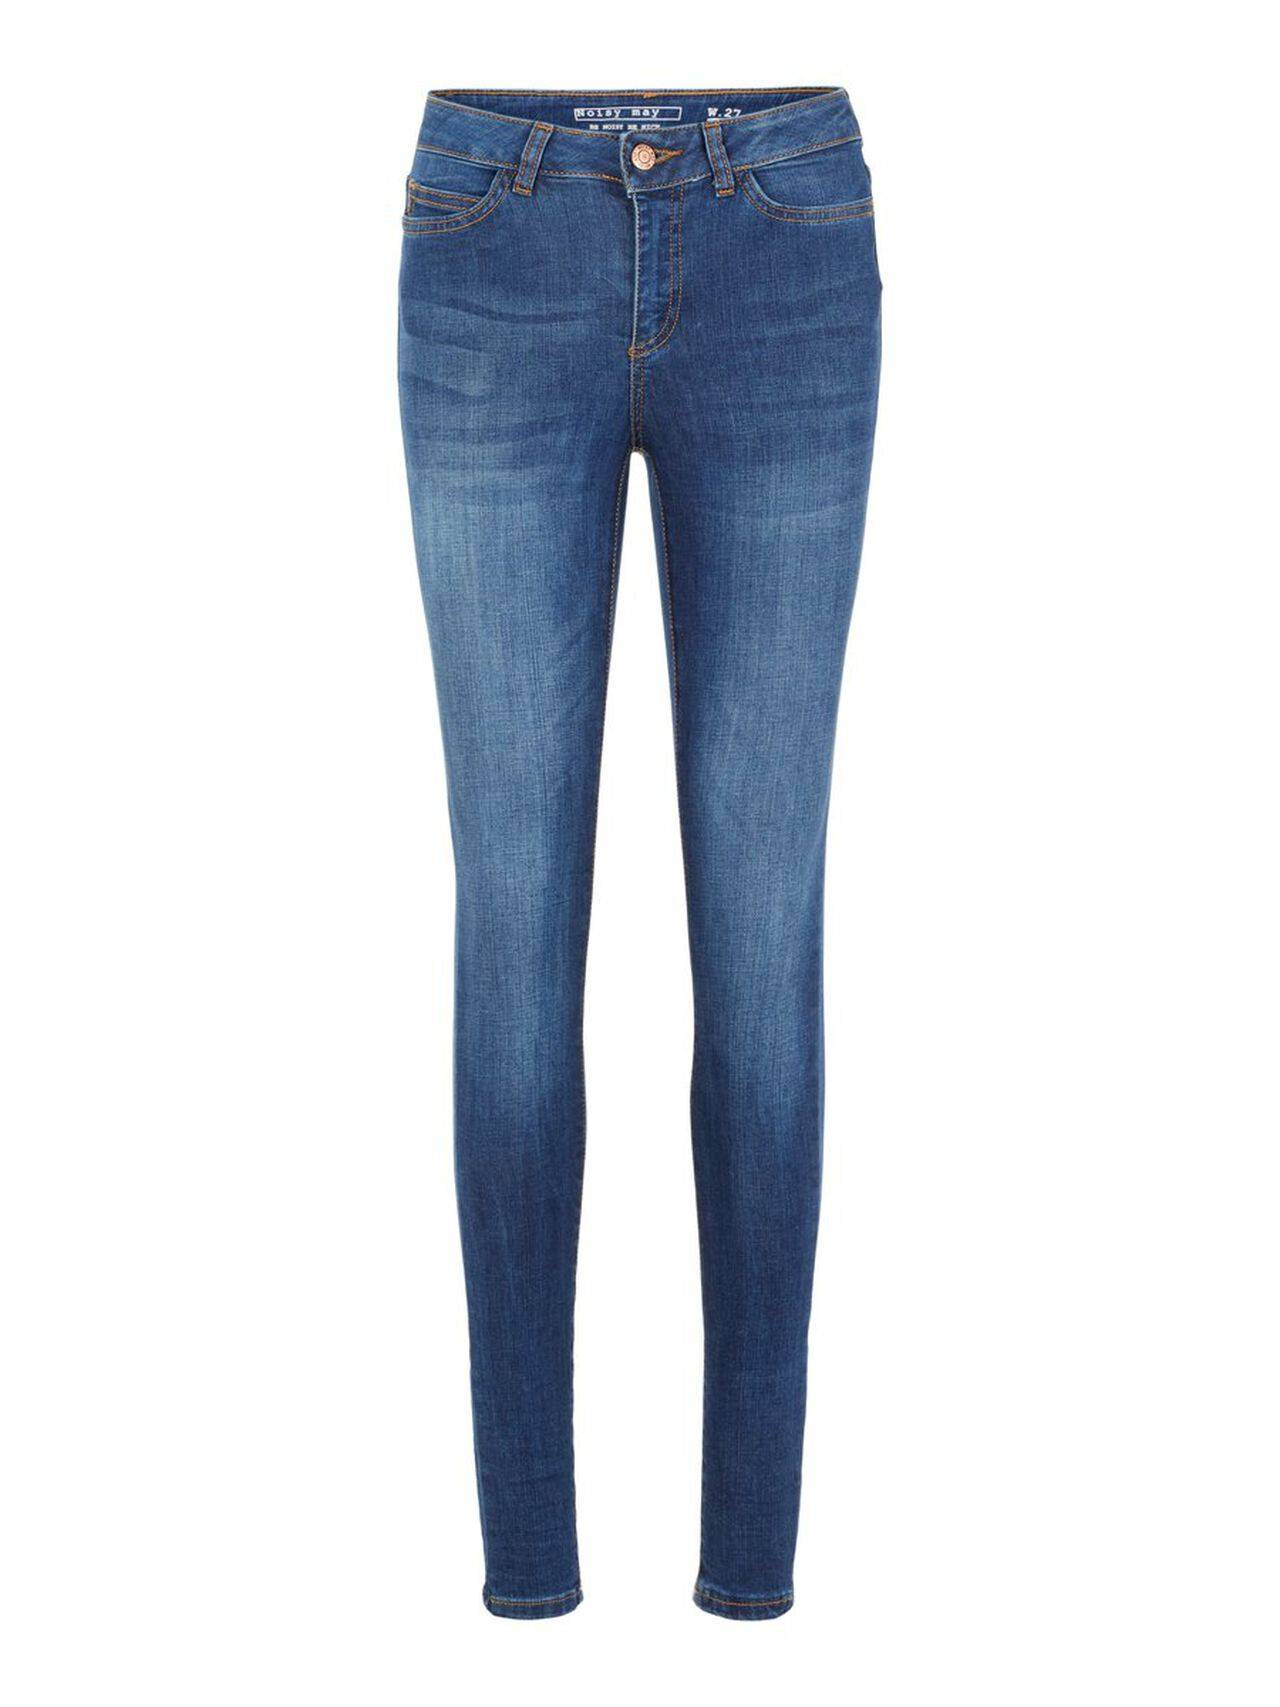 NOISY MAY Lucy Nw Power Shape Skinny Fit Jeans Women Blue